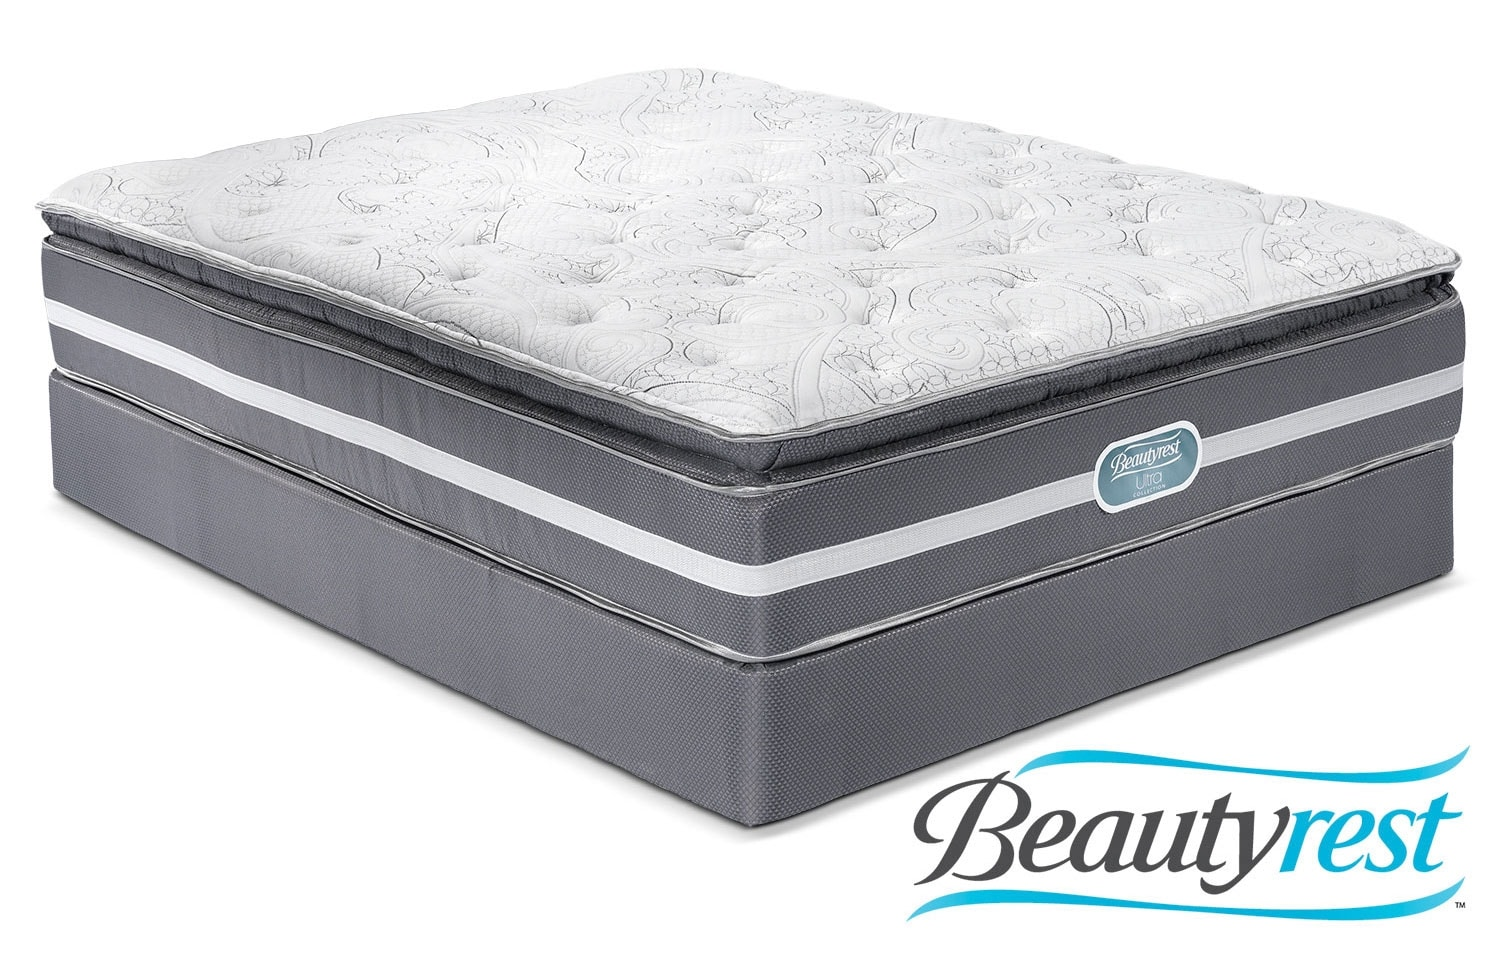 Queen mattress and boxspring set queen size mattress and boxspring set for sale view paula - Ikea queen size box spring ...